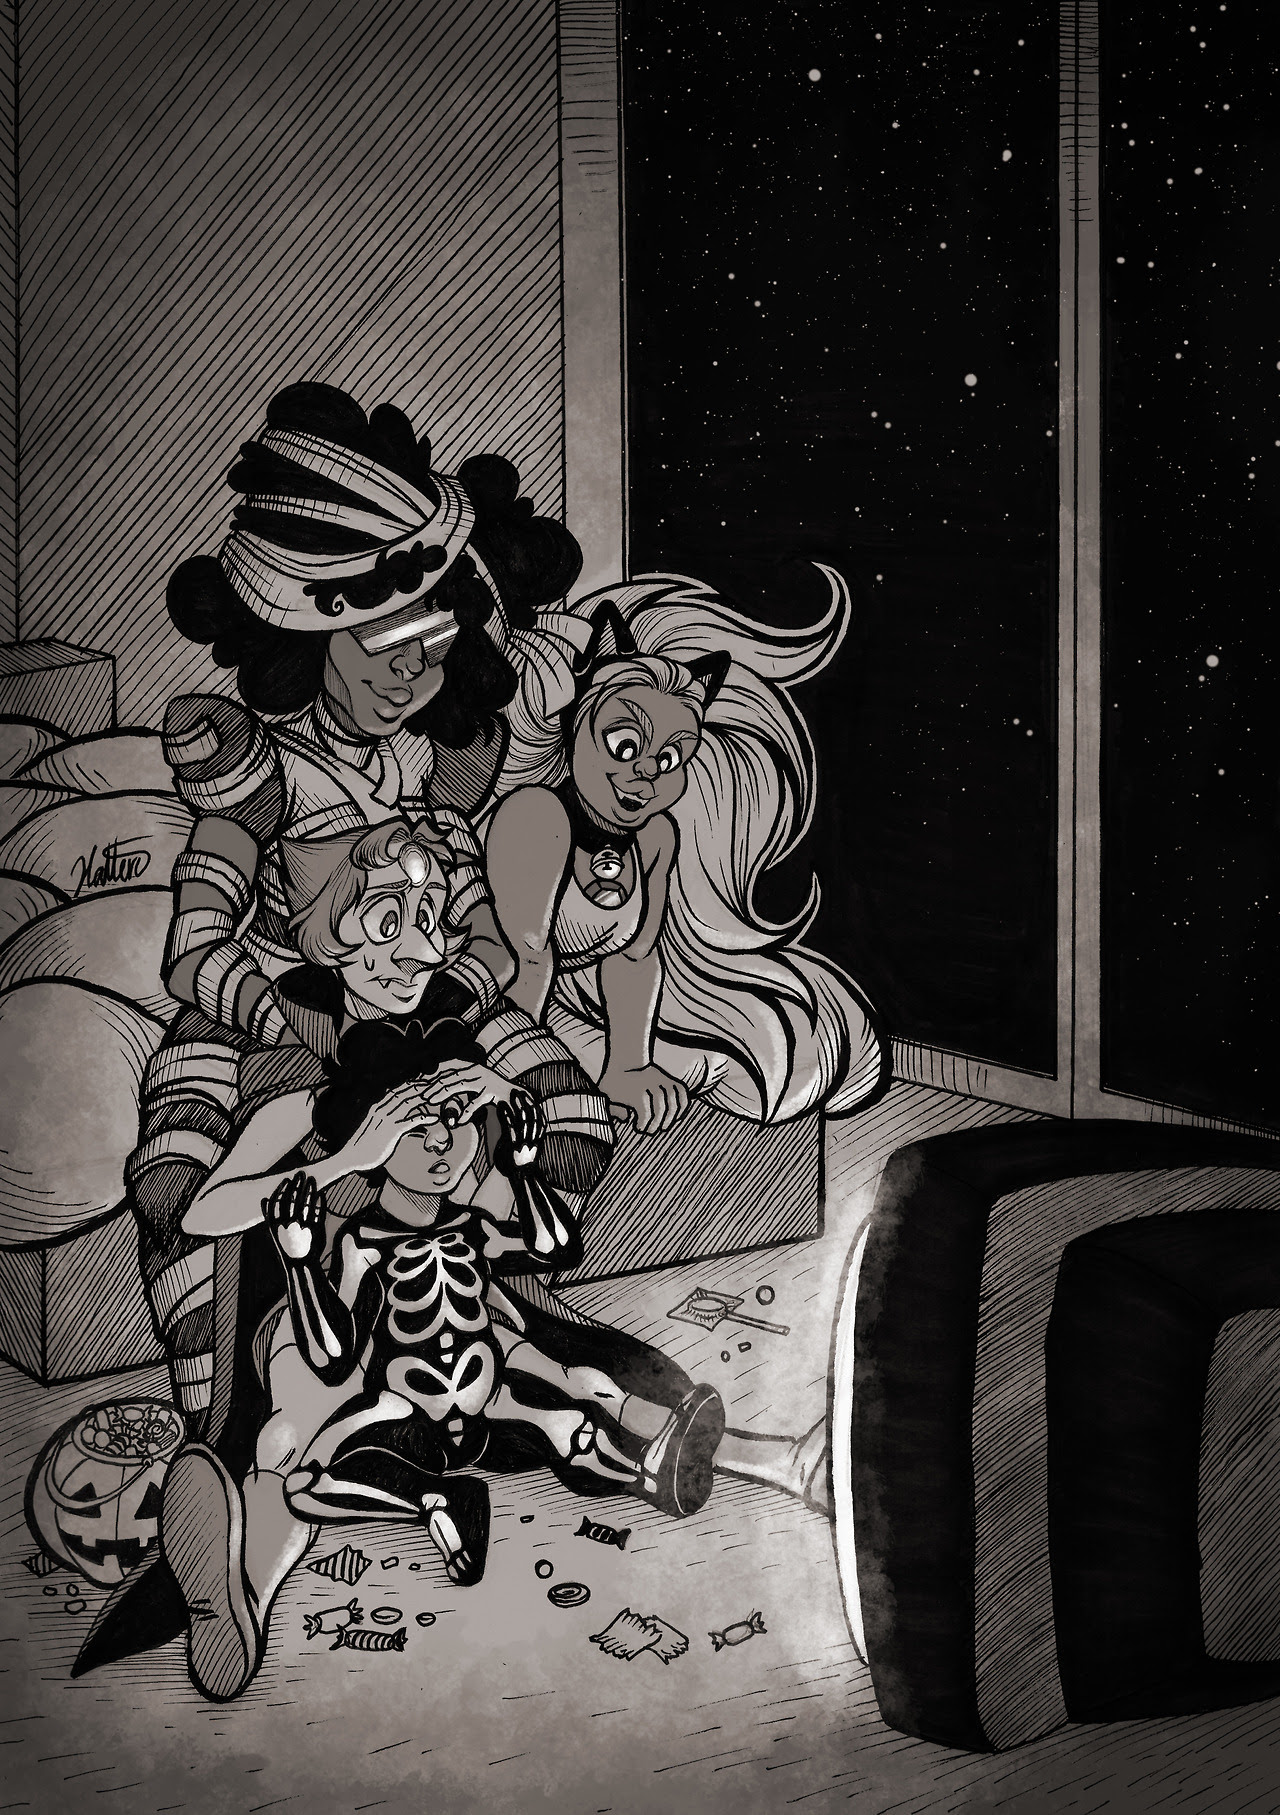 Inktober: Day 31 - Scary Movie Night